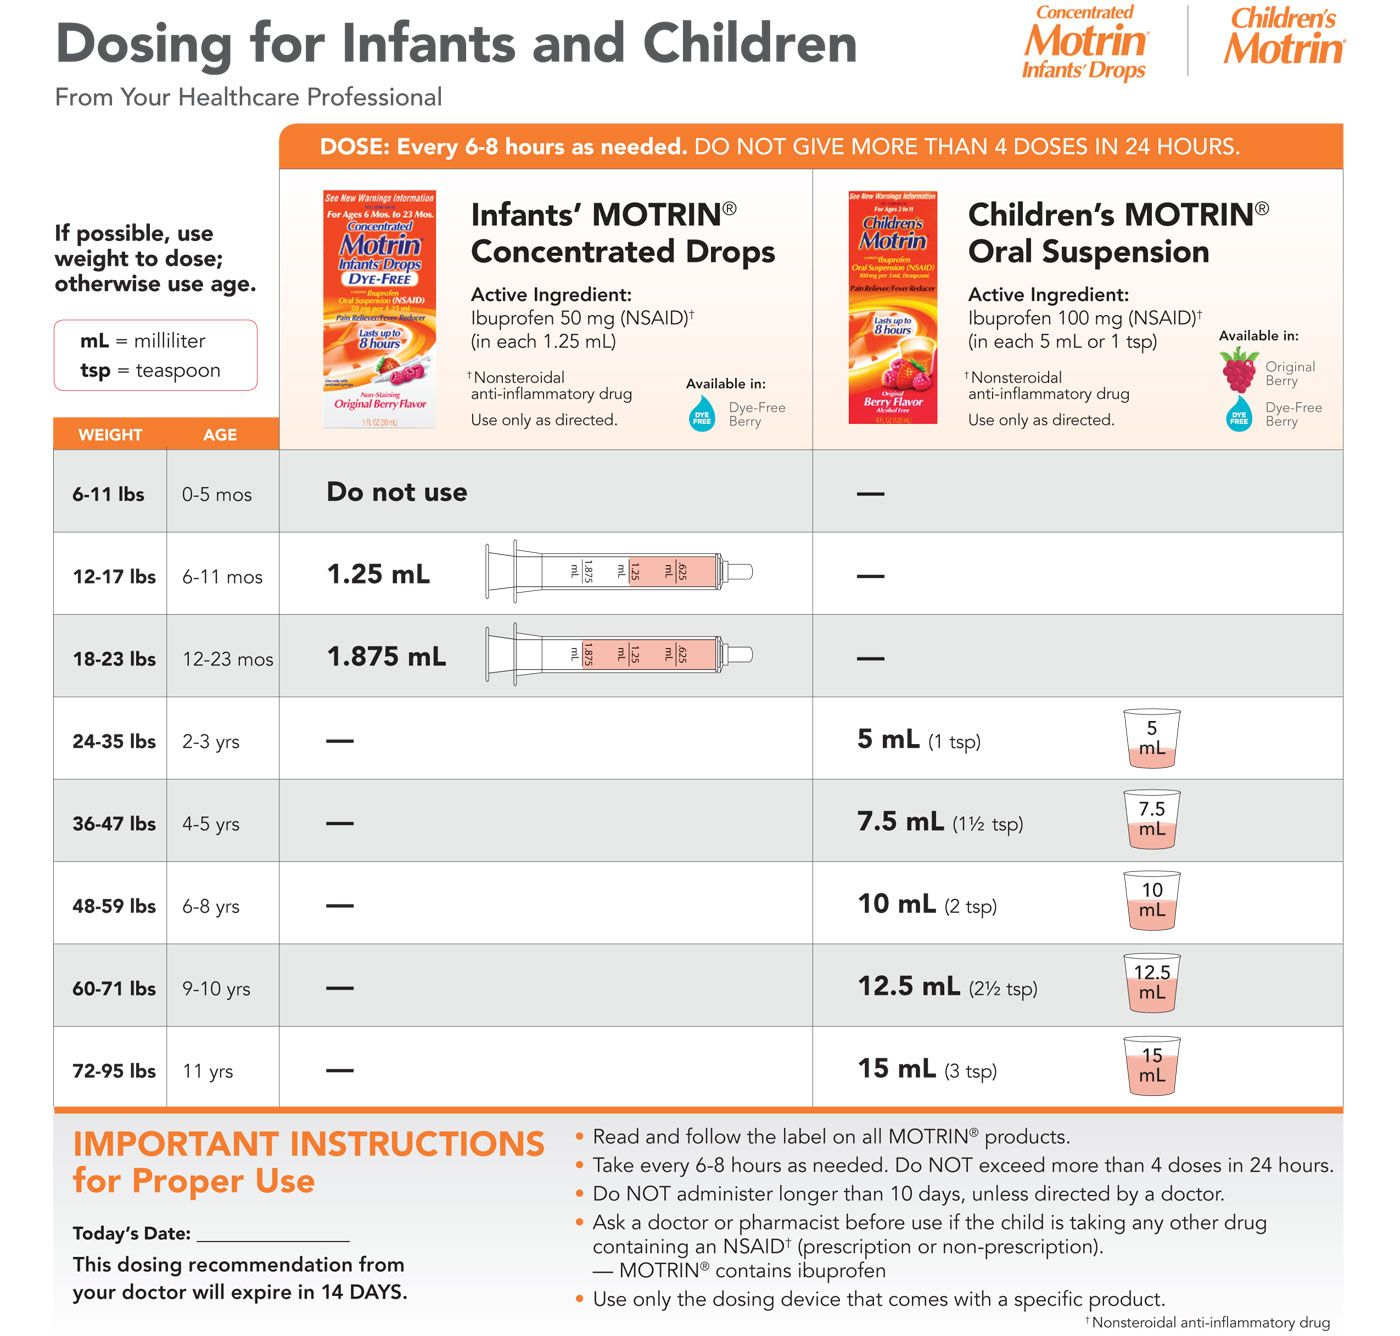 Motrin ibuprofen dosage for children pediatrics pediatrician also rh pinterest